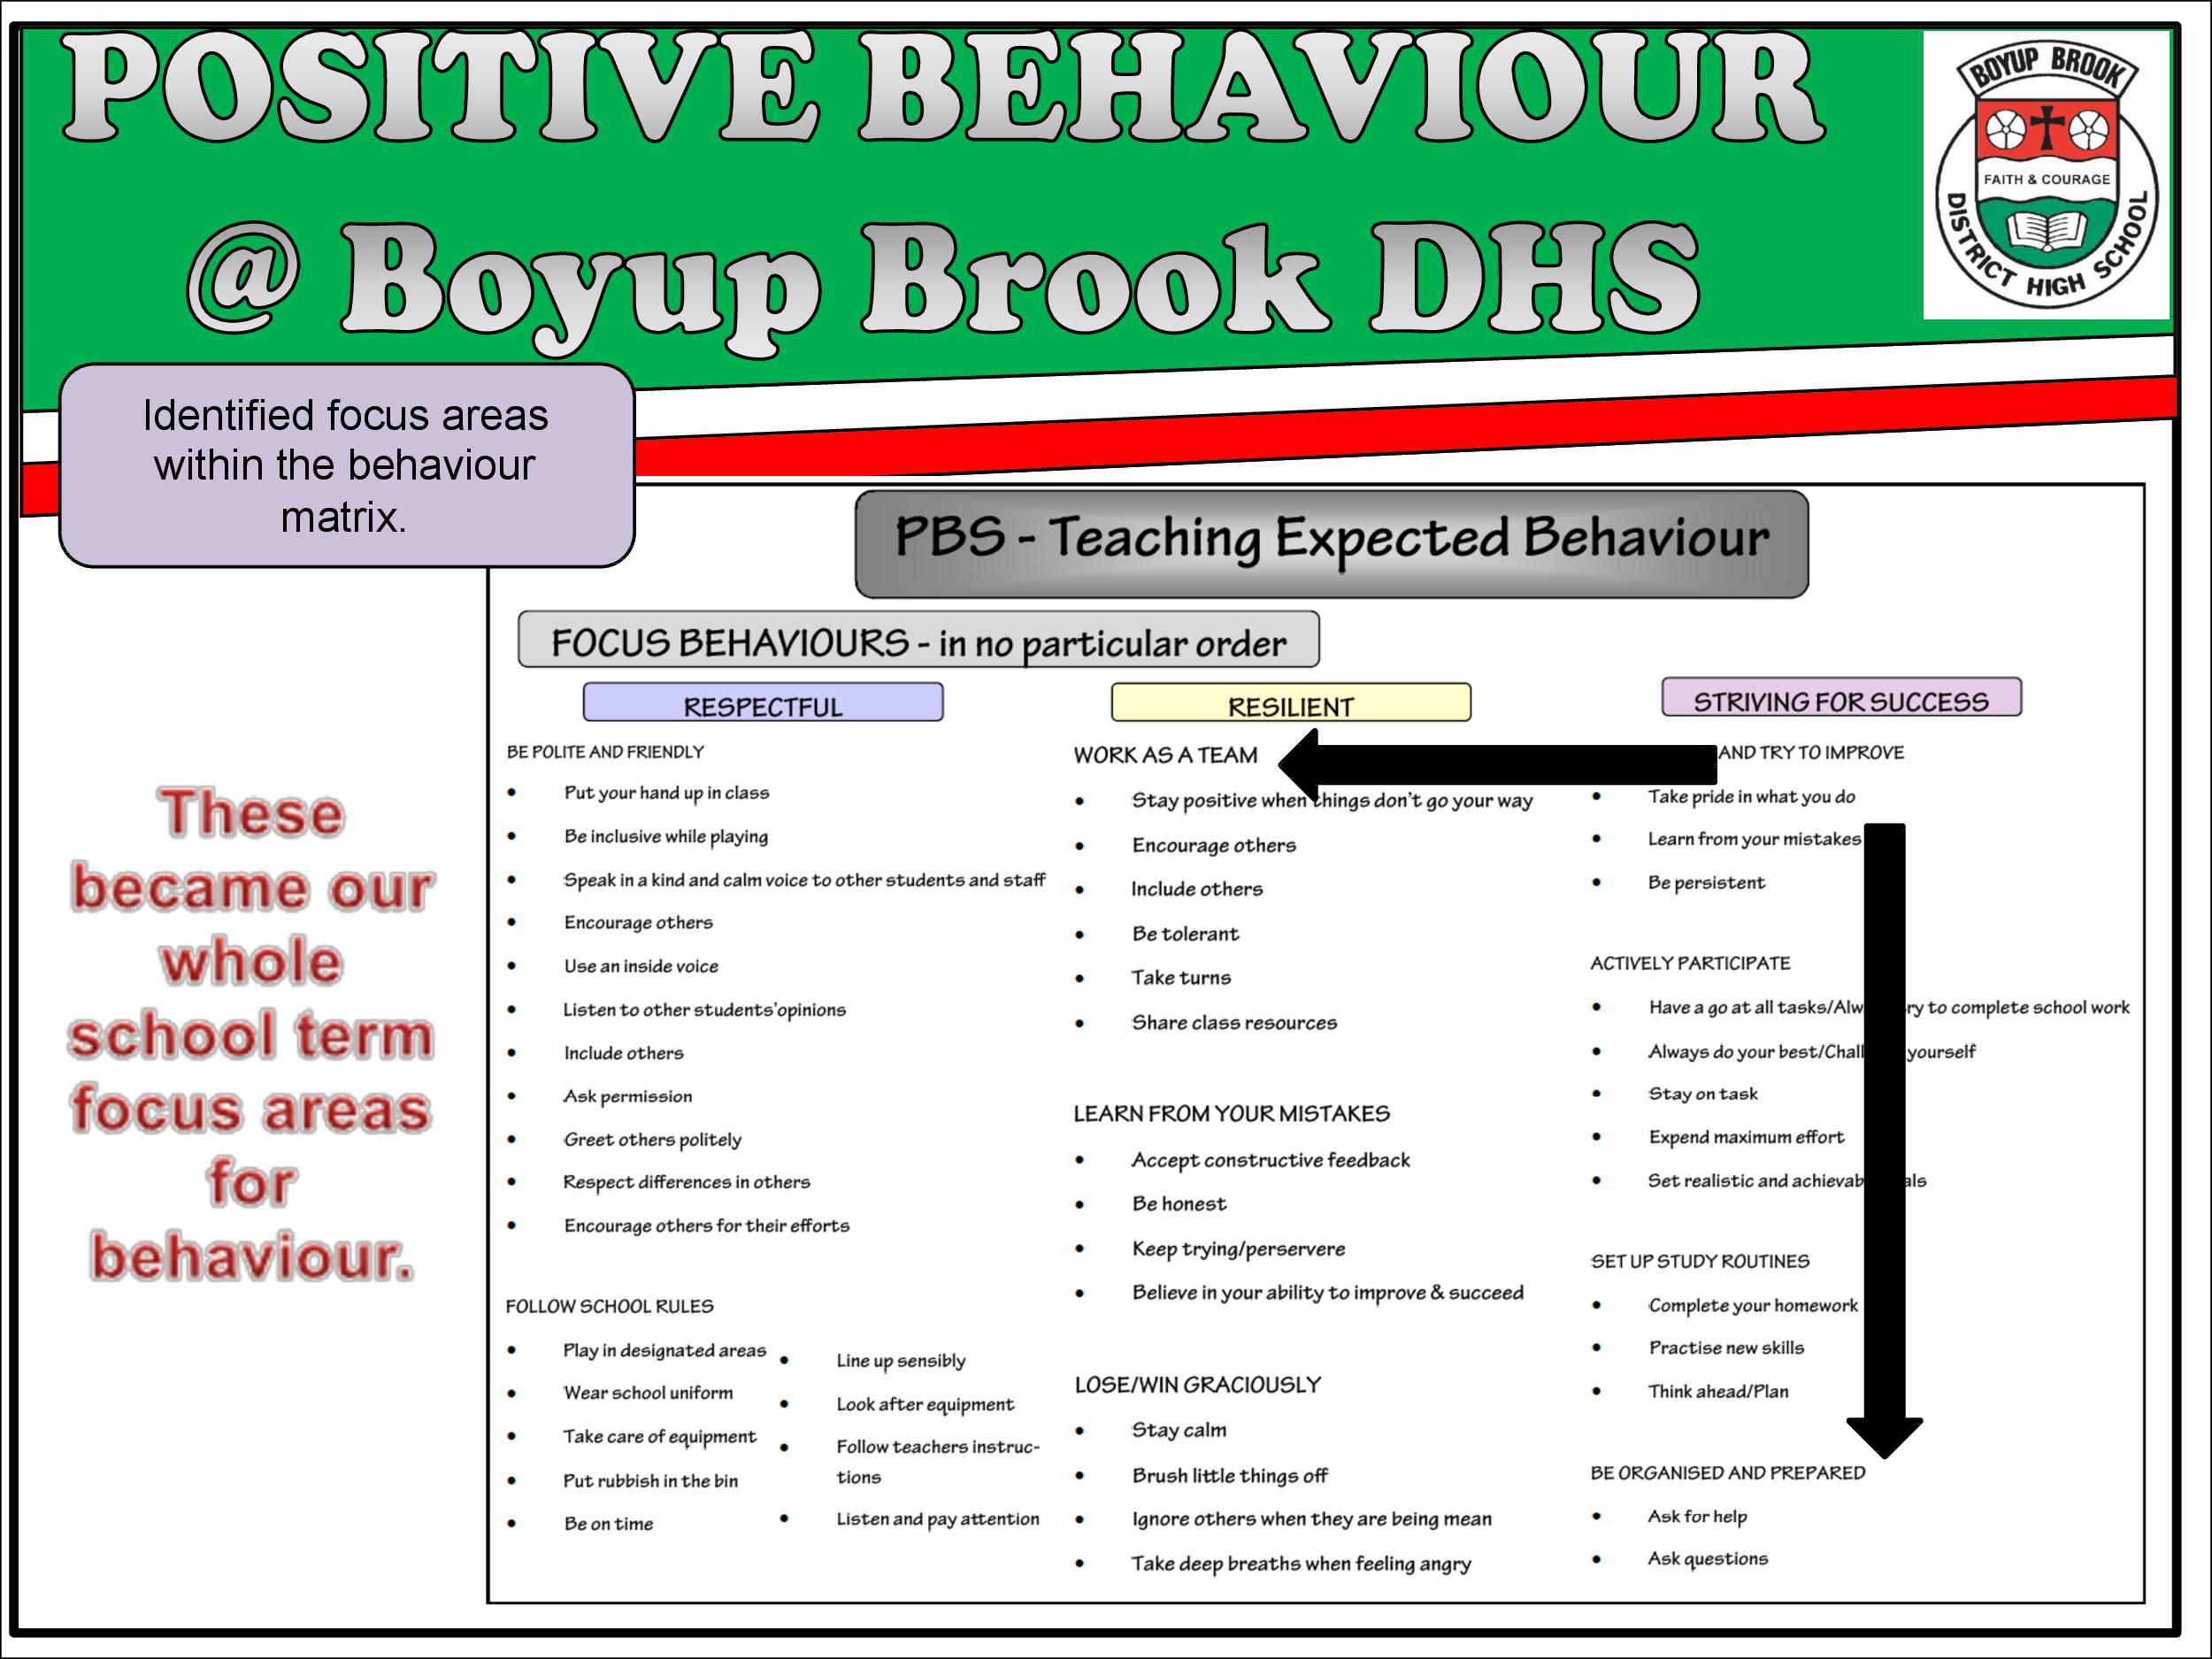 Positive Behaviour Support Page 16